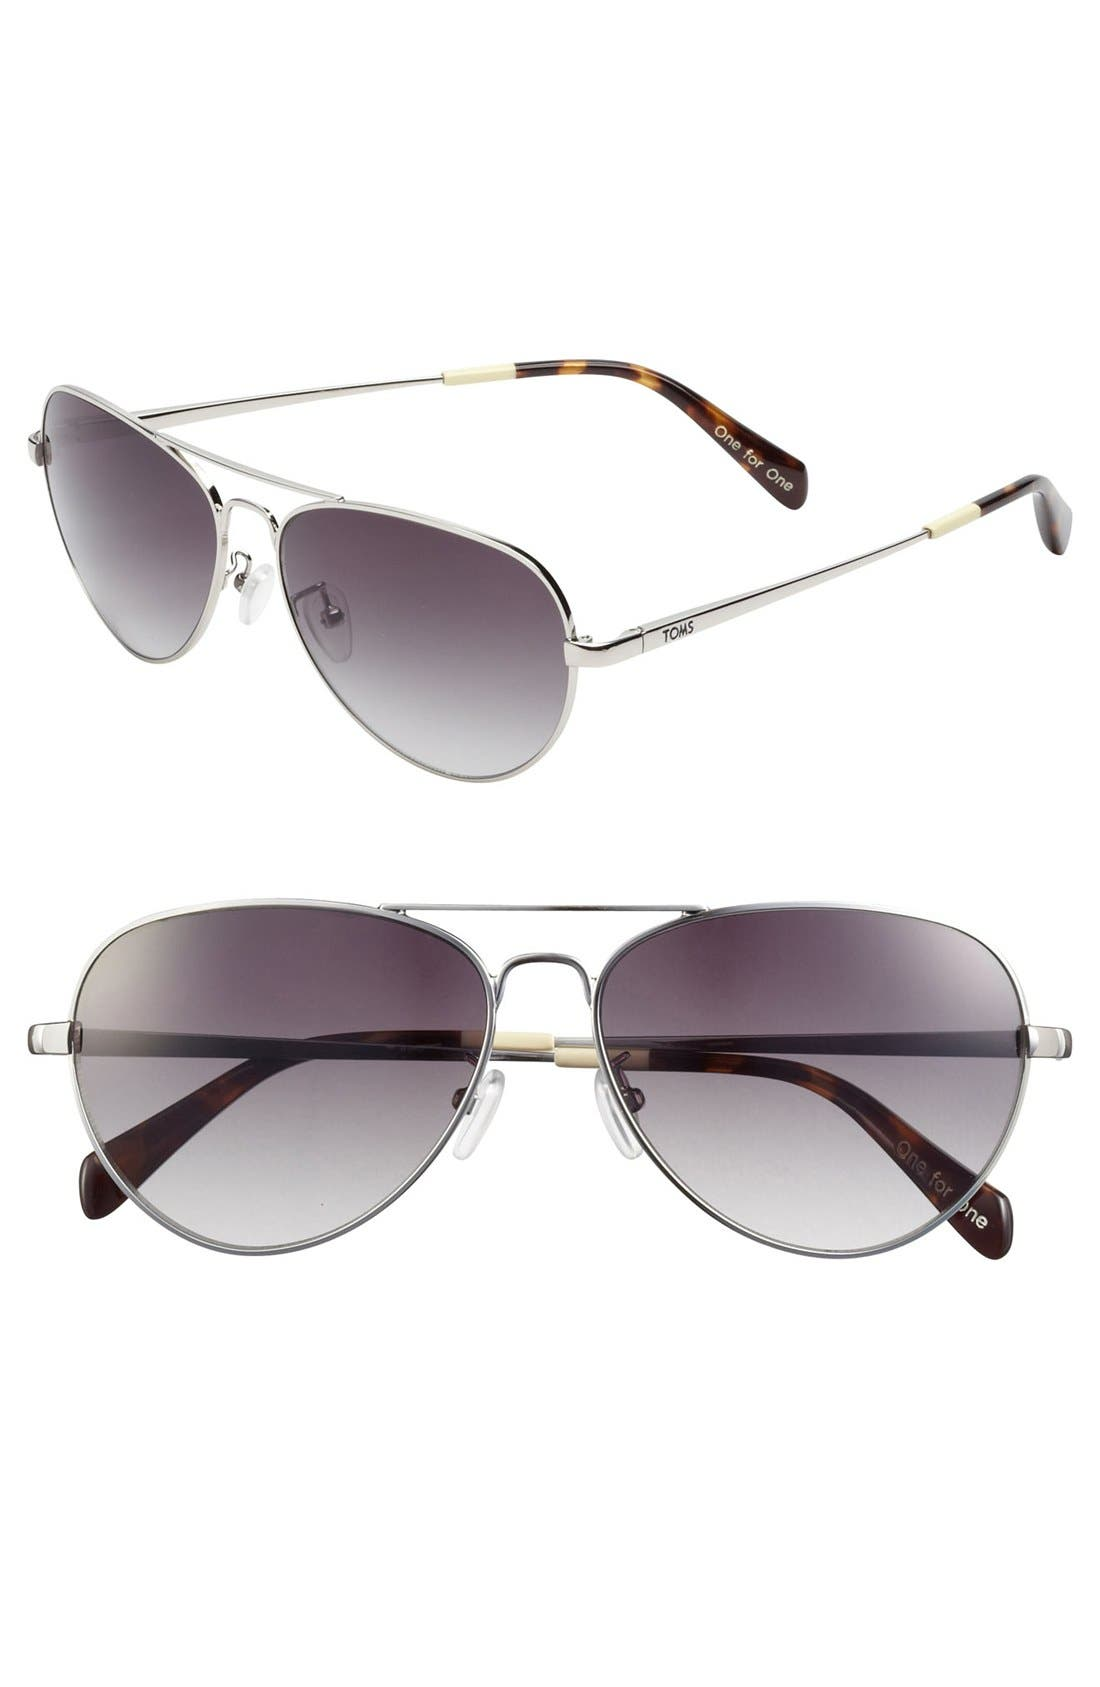 Main Image - TOMS 'Maverick' 60mm Aviator Sunglasses